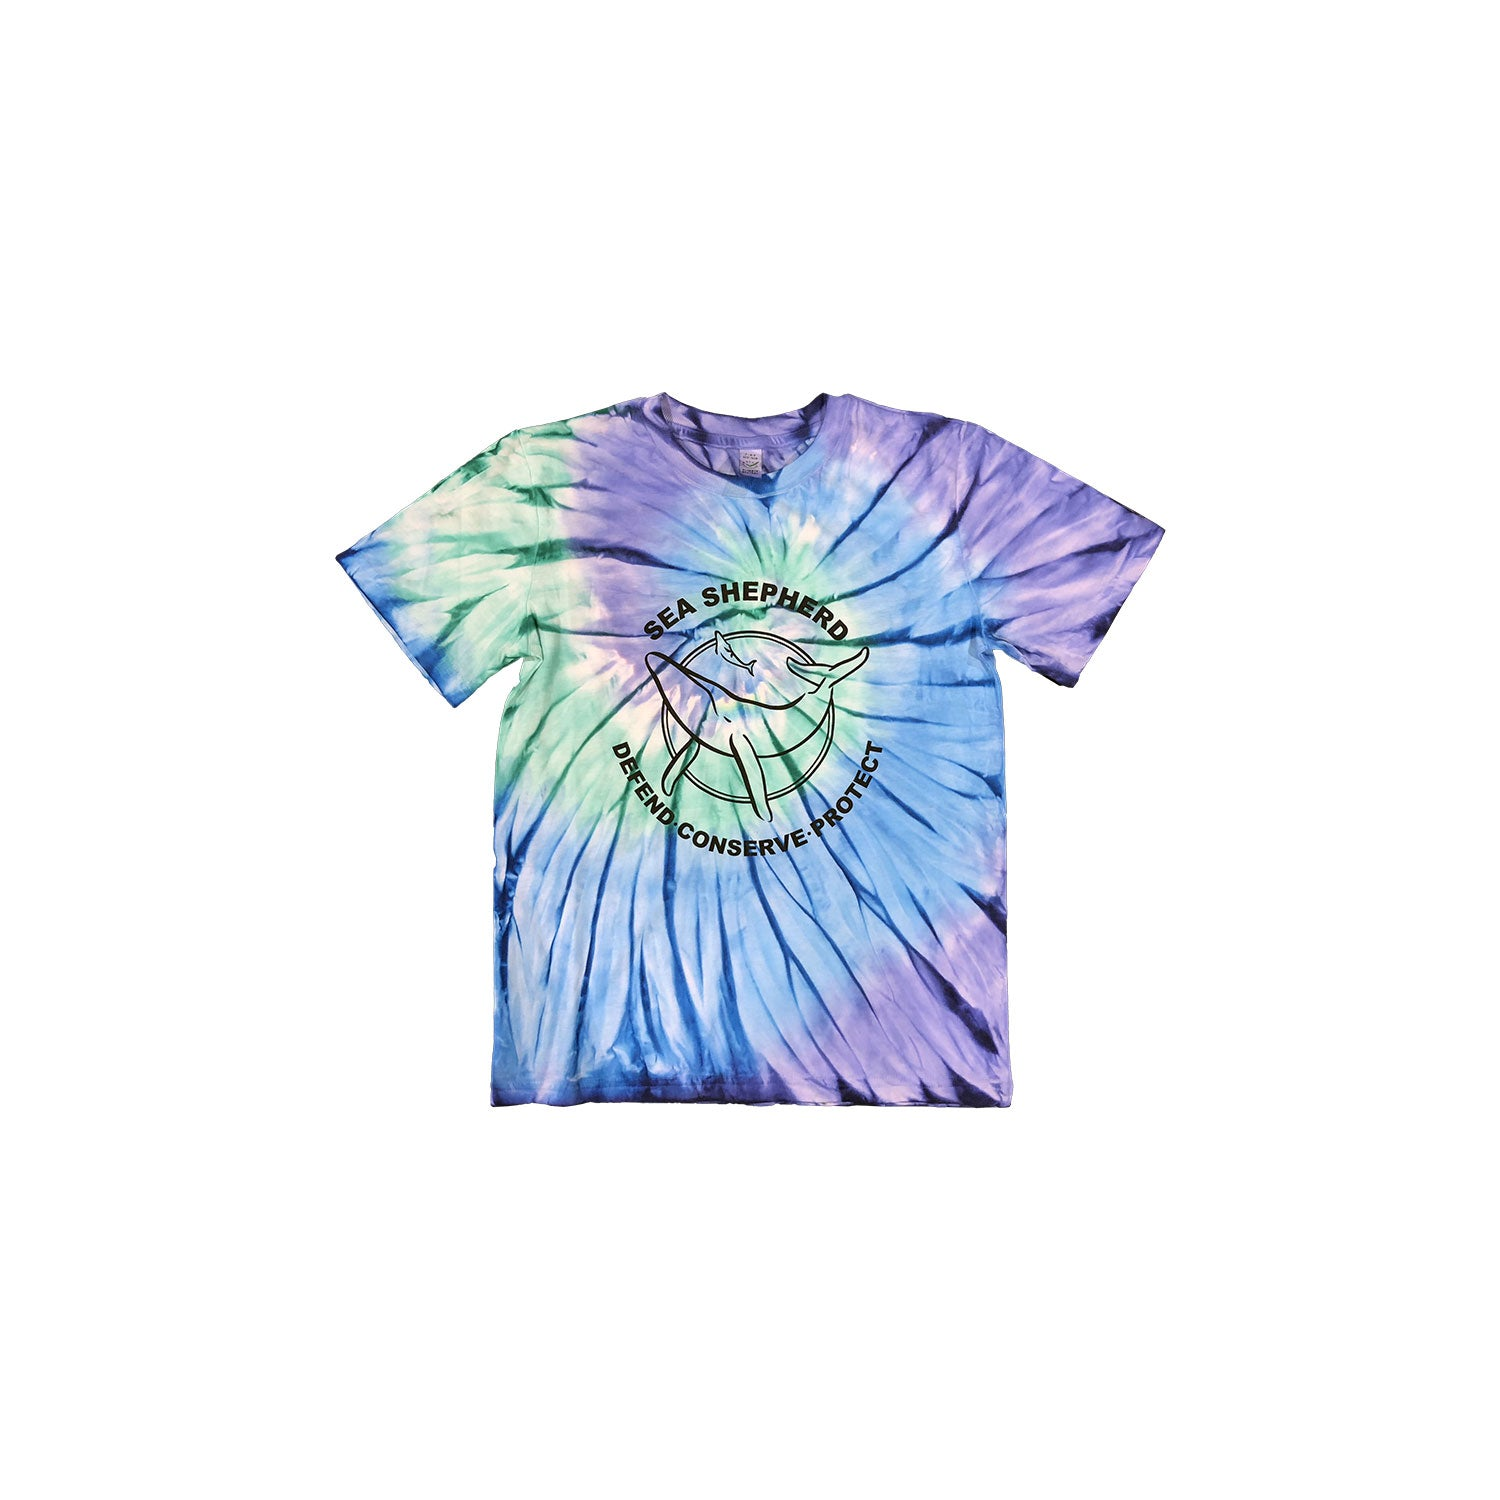 Sea Shepherd Classic Youth Tie Dye Tee - Ocean Blue